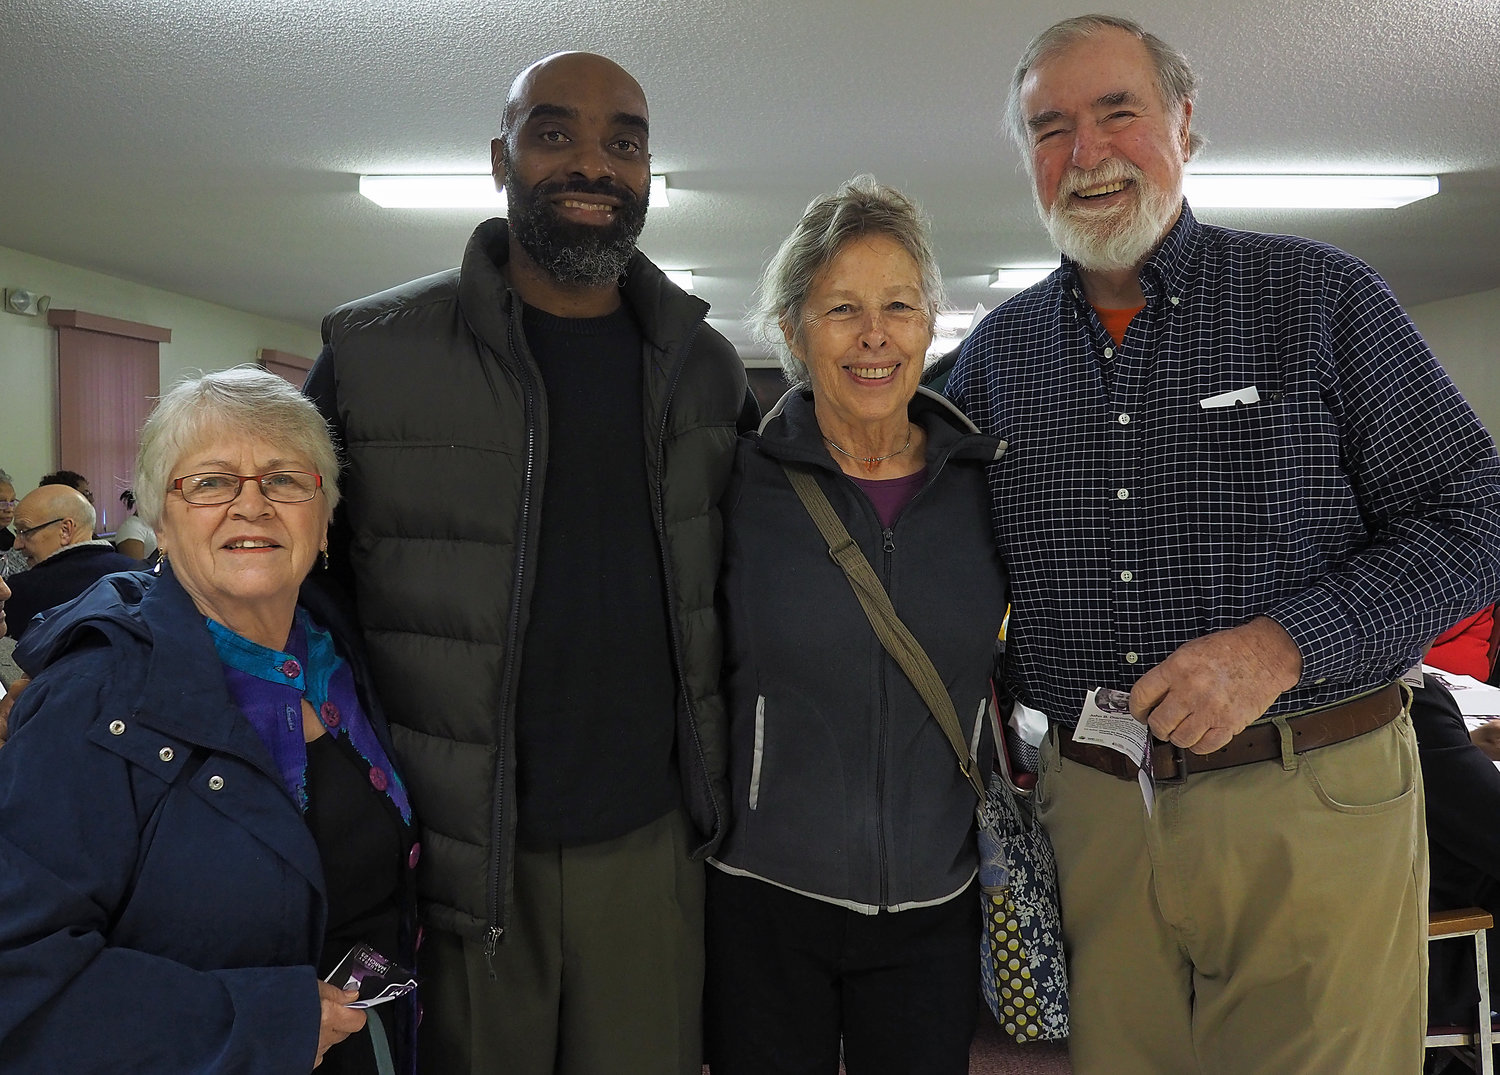 People from across the county came for the West Chatham NAACP Dr. Martin Luther King Jr. breakfast celebration. Pittsboro residents (from left) Irene Wells, Malcolm Henry, Meredith Dillon and Mike Dillon are all smiles at the event which focused on justice and the complexities of racism.